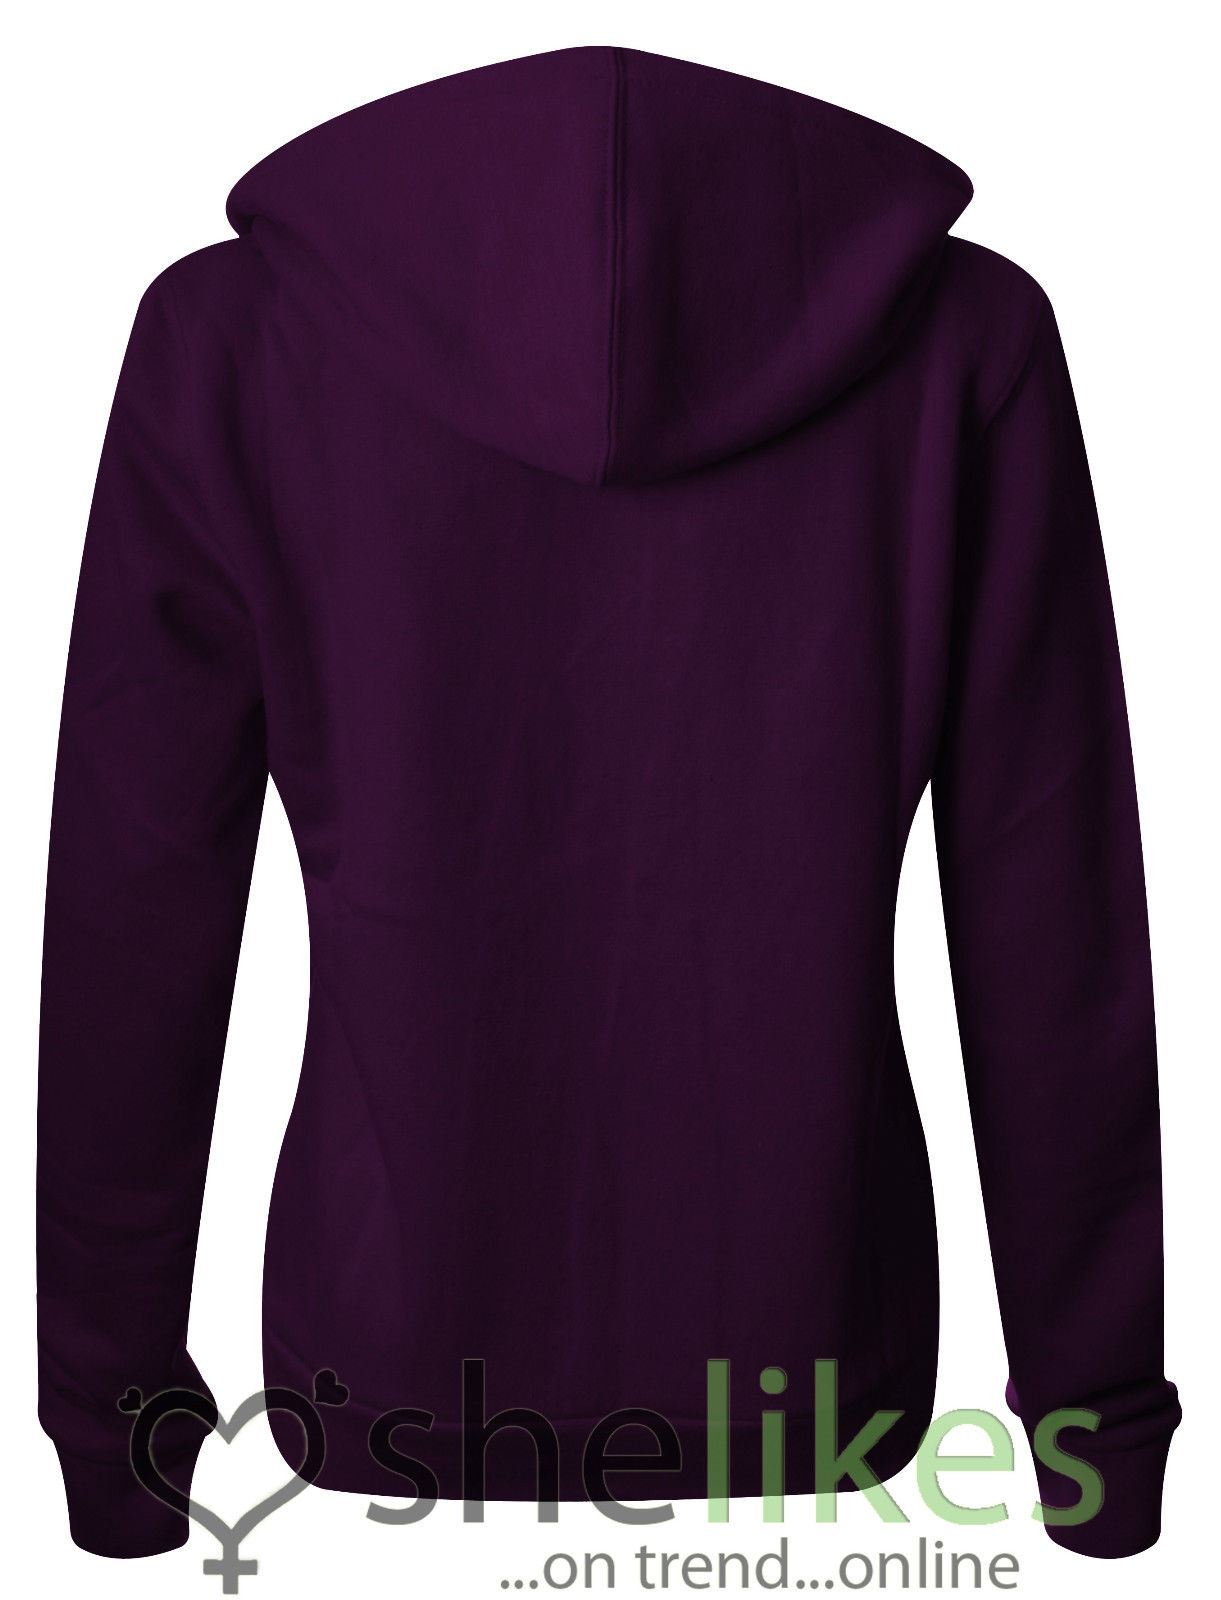 NEW-LADIES-WOMENS-PLUS-SIZE-FRONT-ZIP-HOODED-SWEATSHIRT-PLAIN-HOODIE-JACKET-TOP thumbnail 11